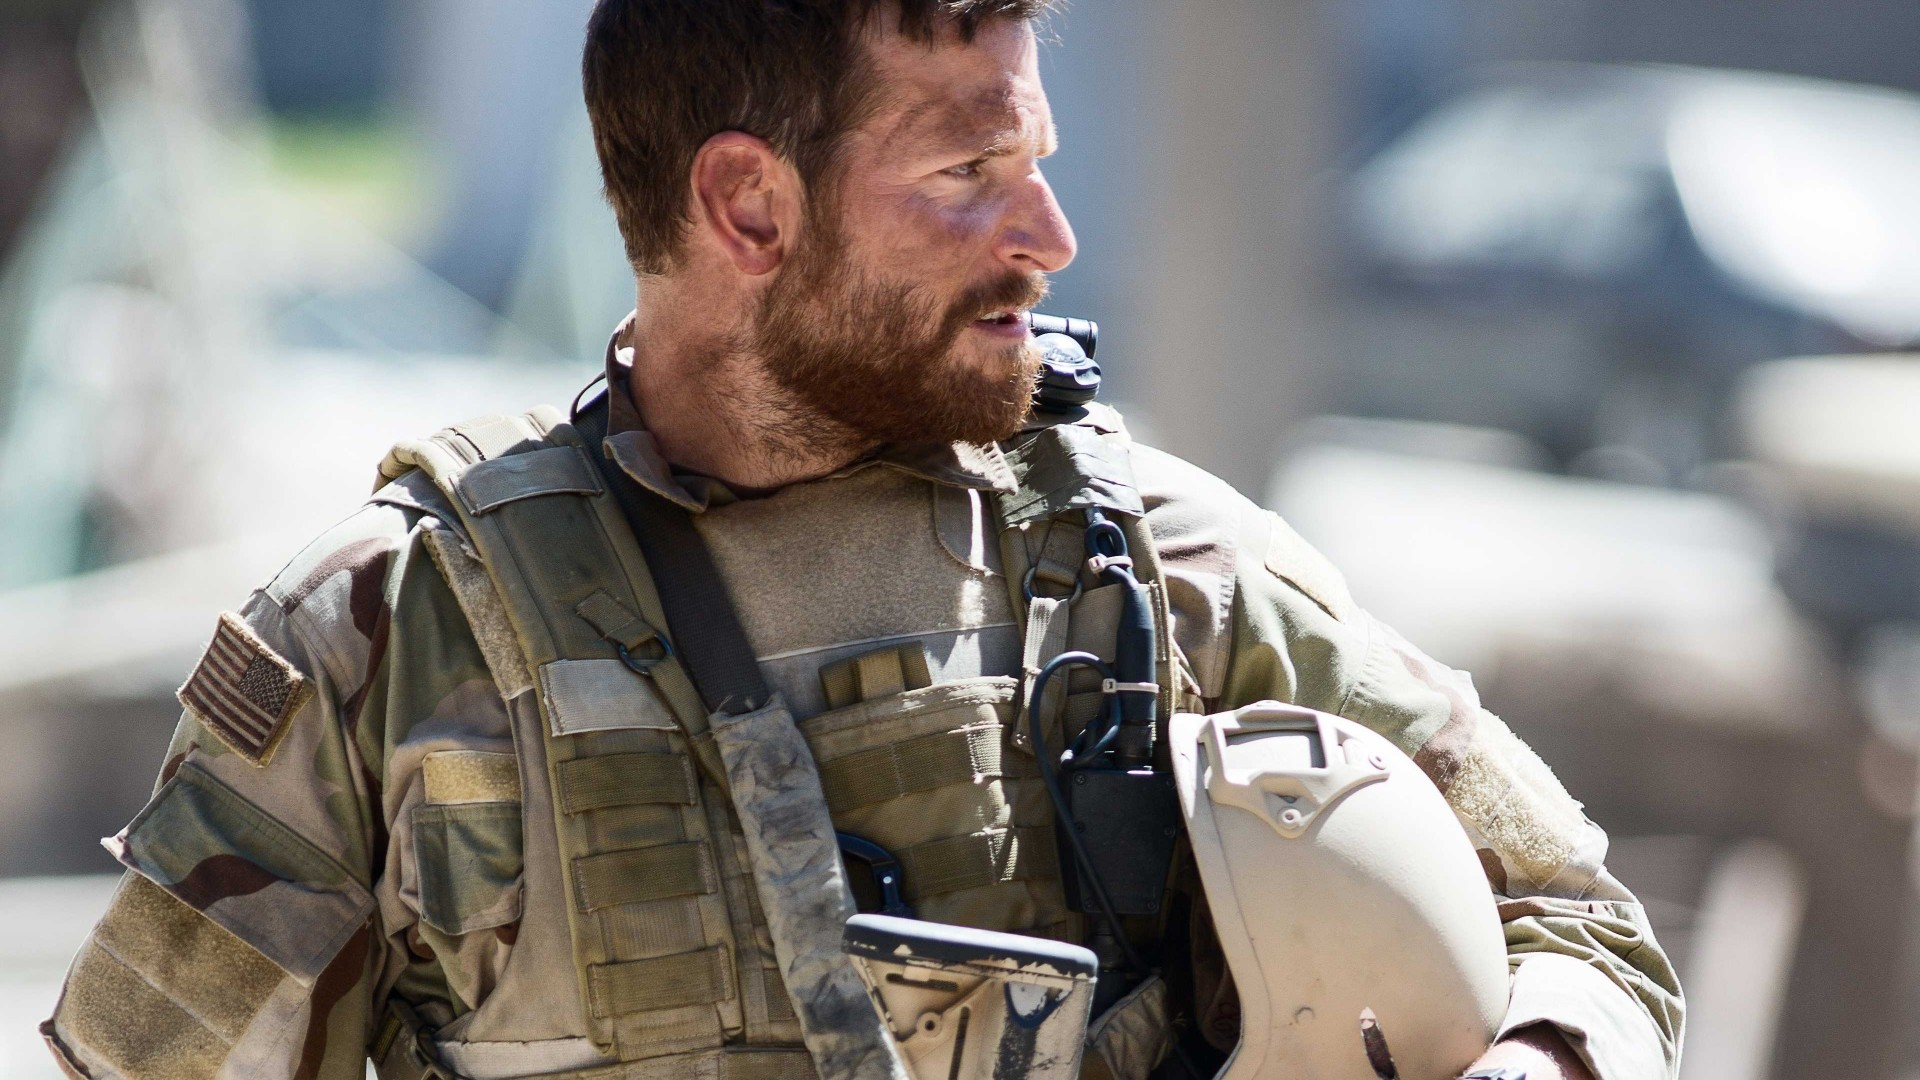 American Sniper, Best Movies of 2015, Chris Kyle, Academy Awards, Bradley Cooper, biographical, Sienna Miller, US Army, USA, war (horizontal)